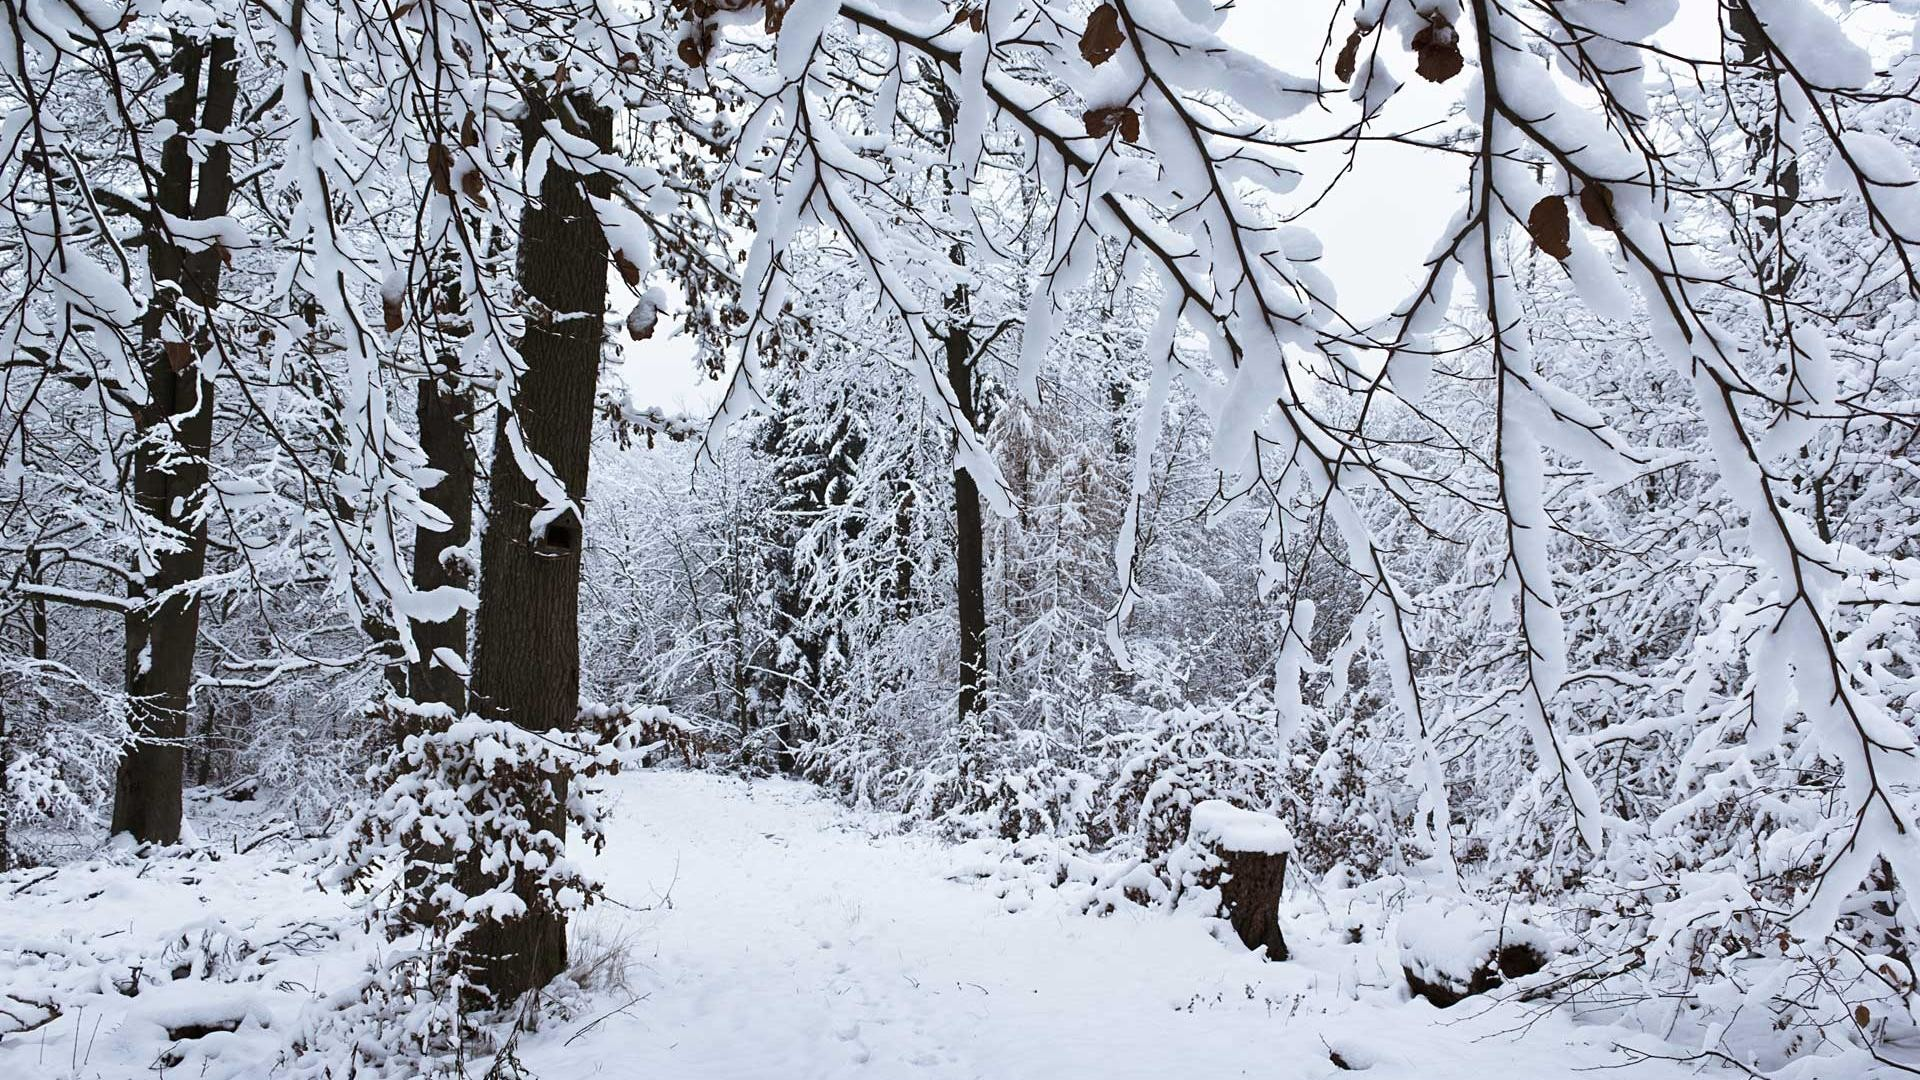 Hd Winter snow of trees scenery backgrounds wide wallpapers :1280×800,1440×900,1680×1050